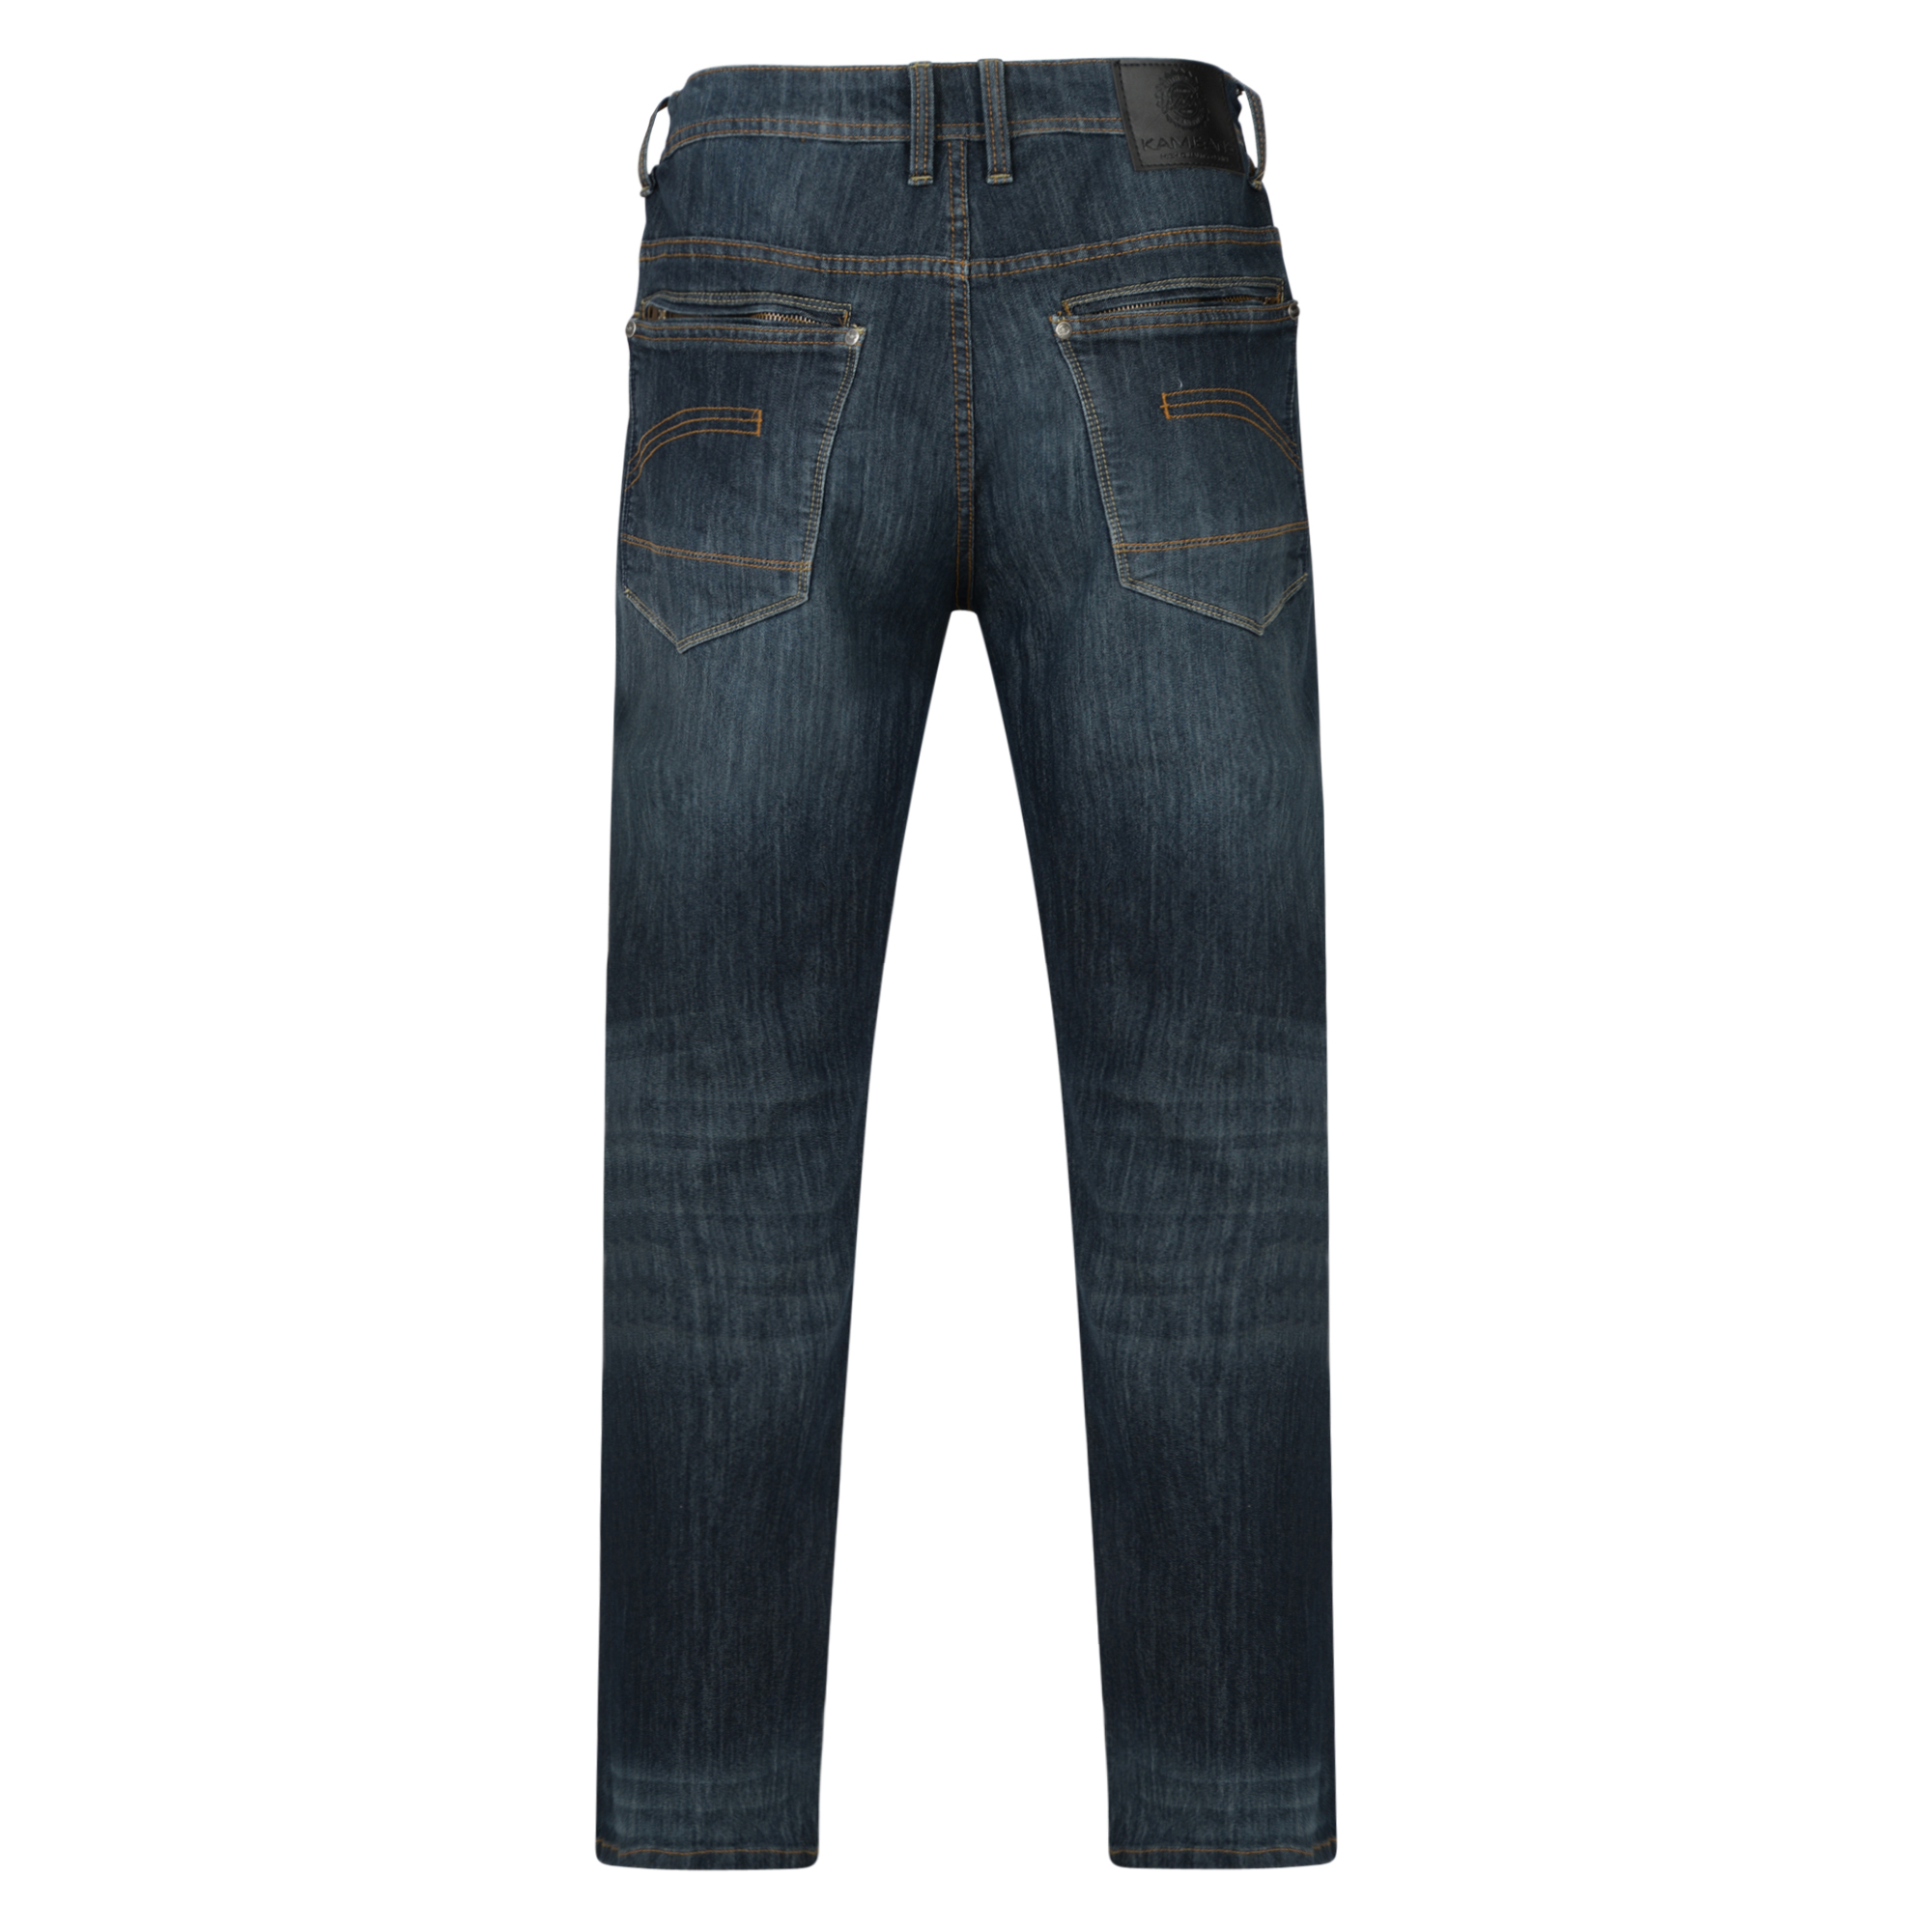 Kam-Jeanswear-Mens-Rory-Stretch-Jeans-KJ177 thumbnail 4